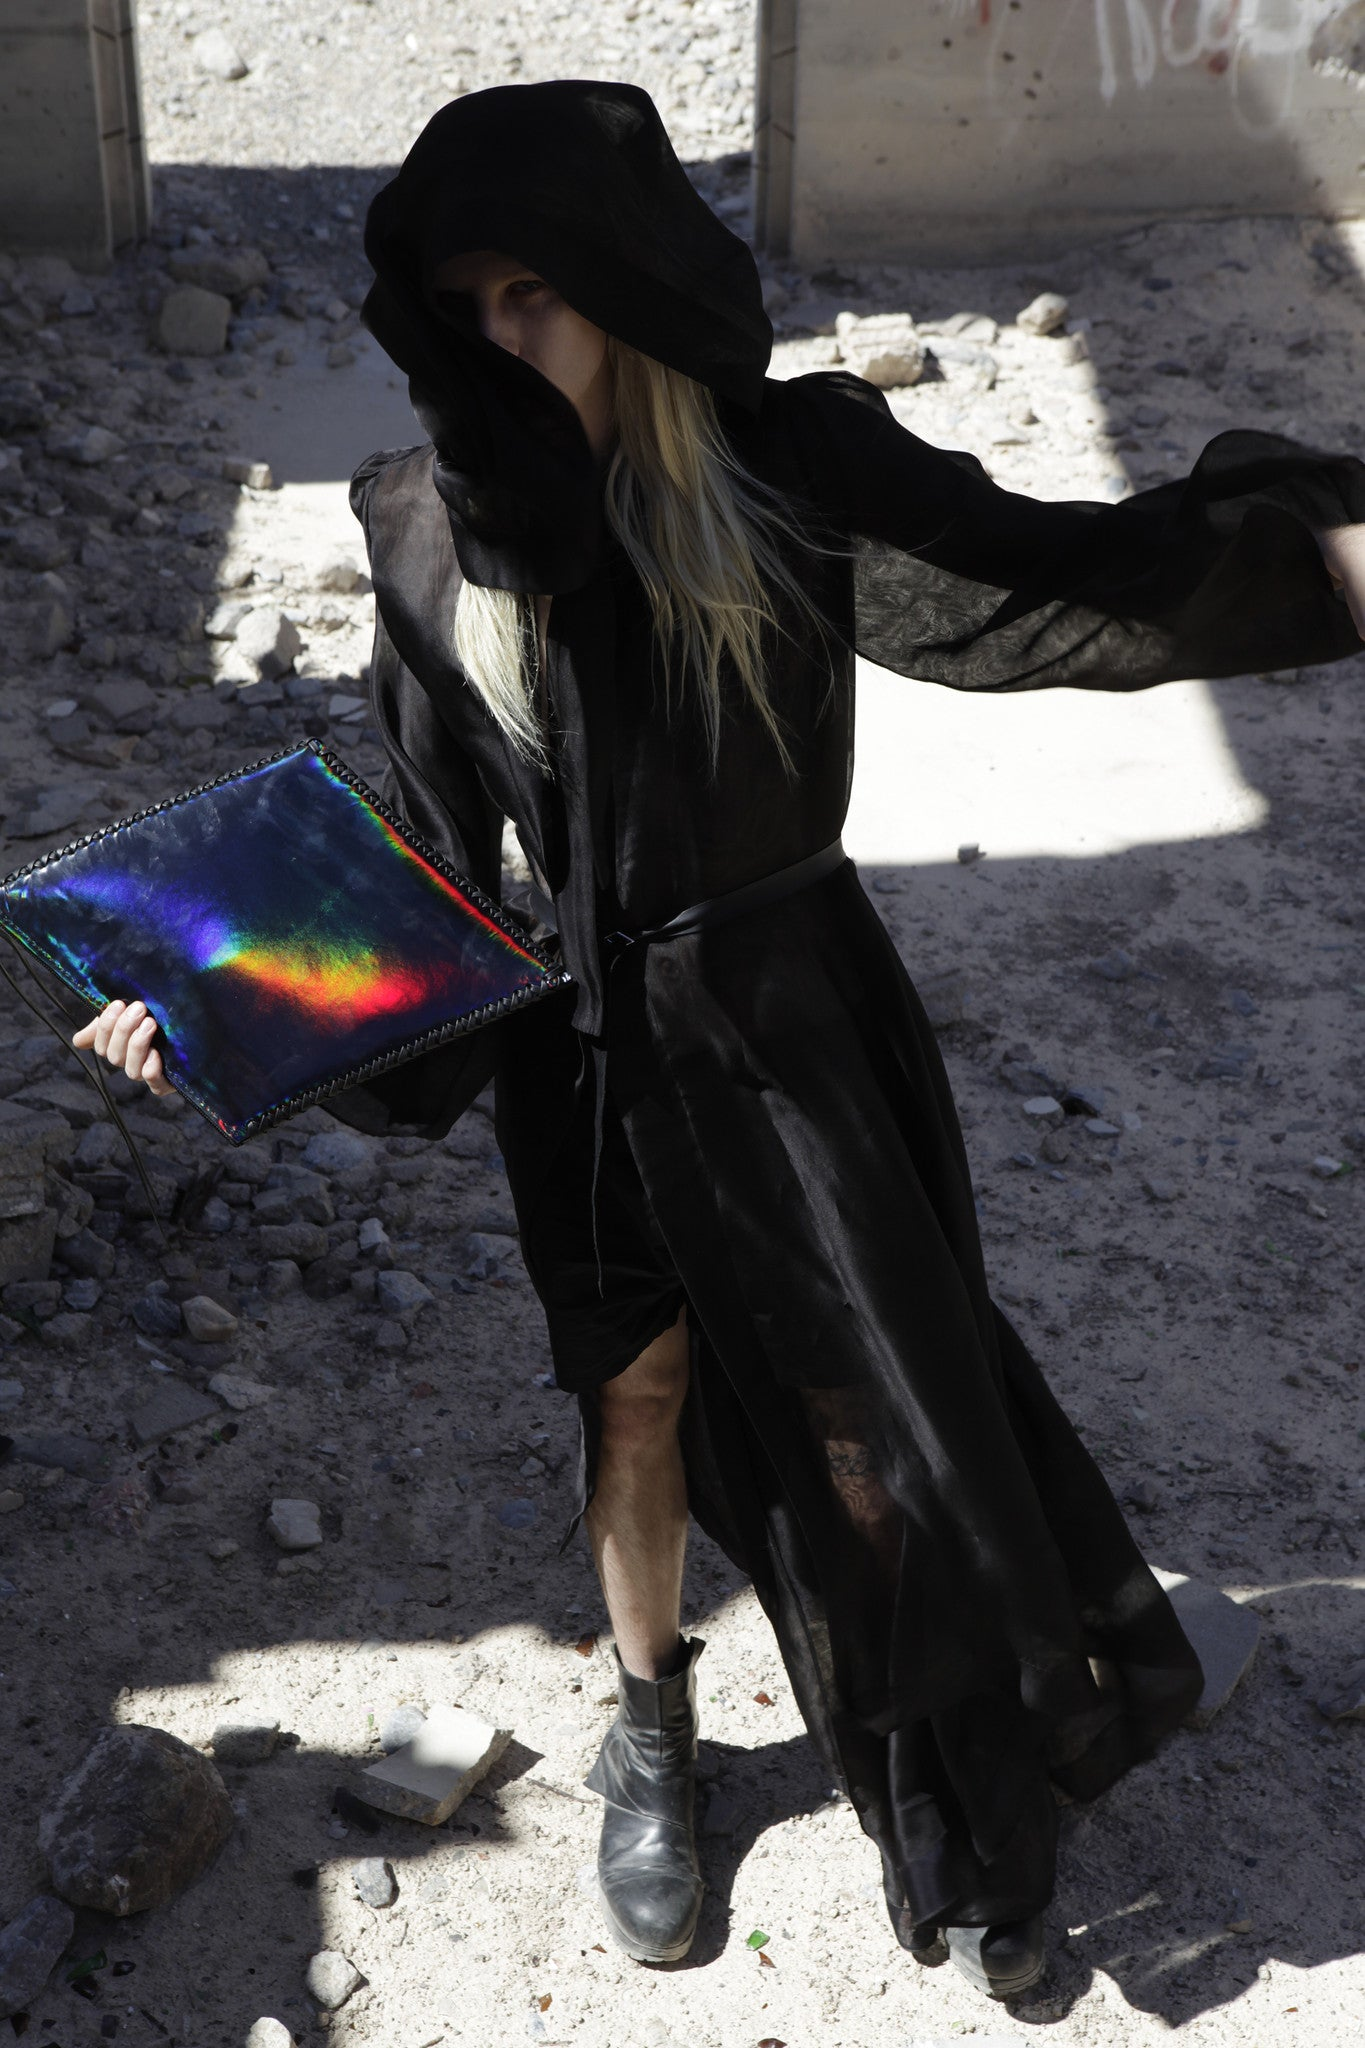 Shiny Reflective Black Rainbow Patent Leather Diamond Kite Shape Clutch Wendy Nichol Luxury Handbag Purse Designer Handmade in NYC New York City Large Thin Structured Clutch Evening Red Carpet High Quality Leather Ryan James Smith Model